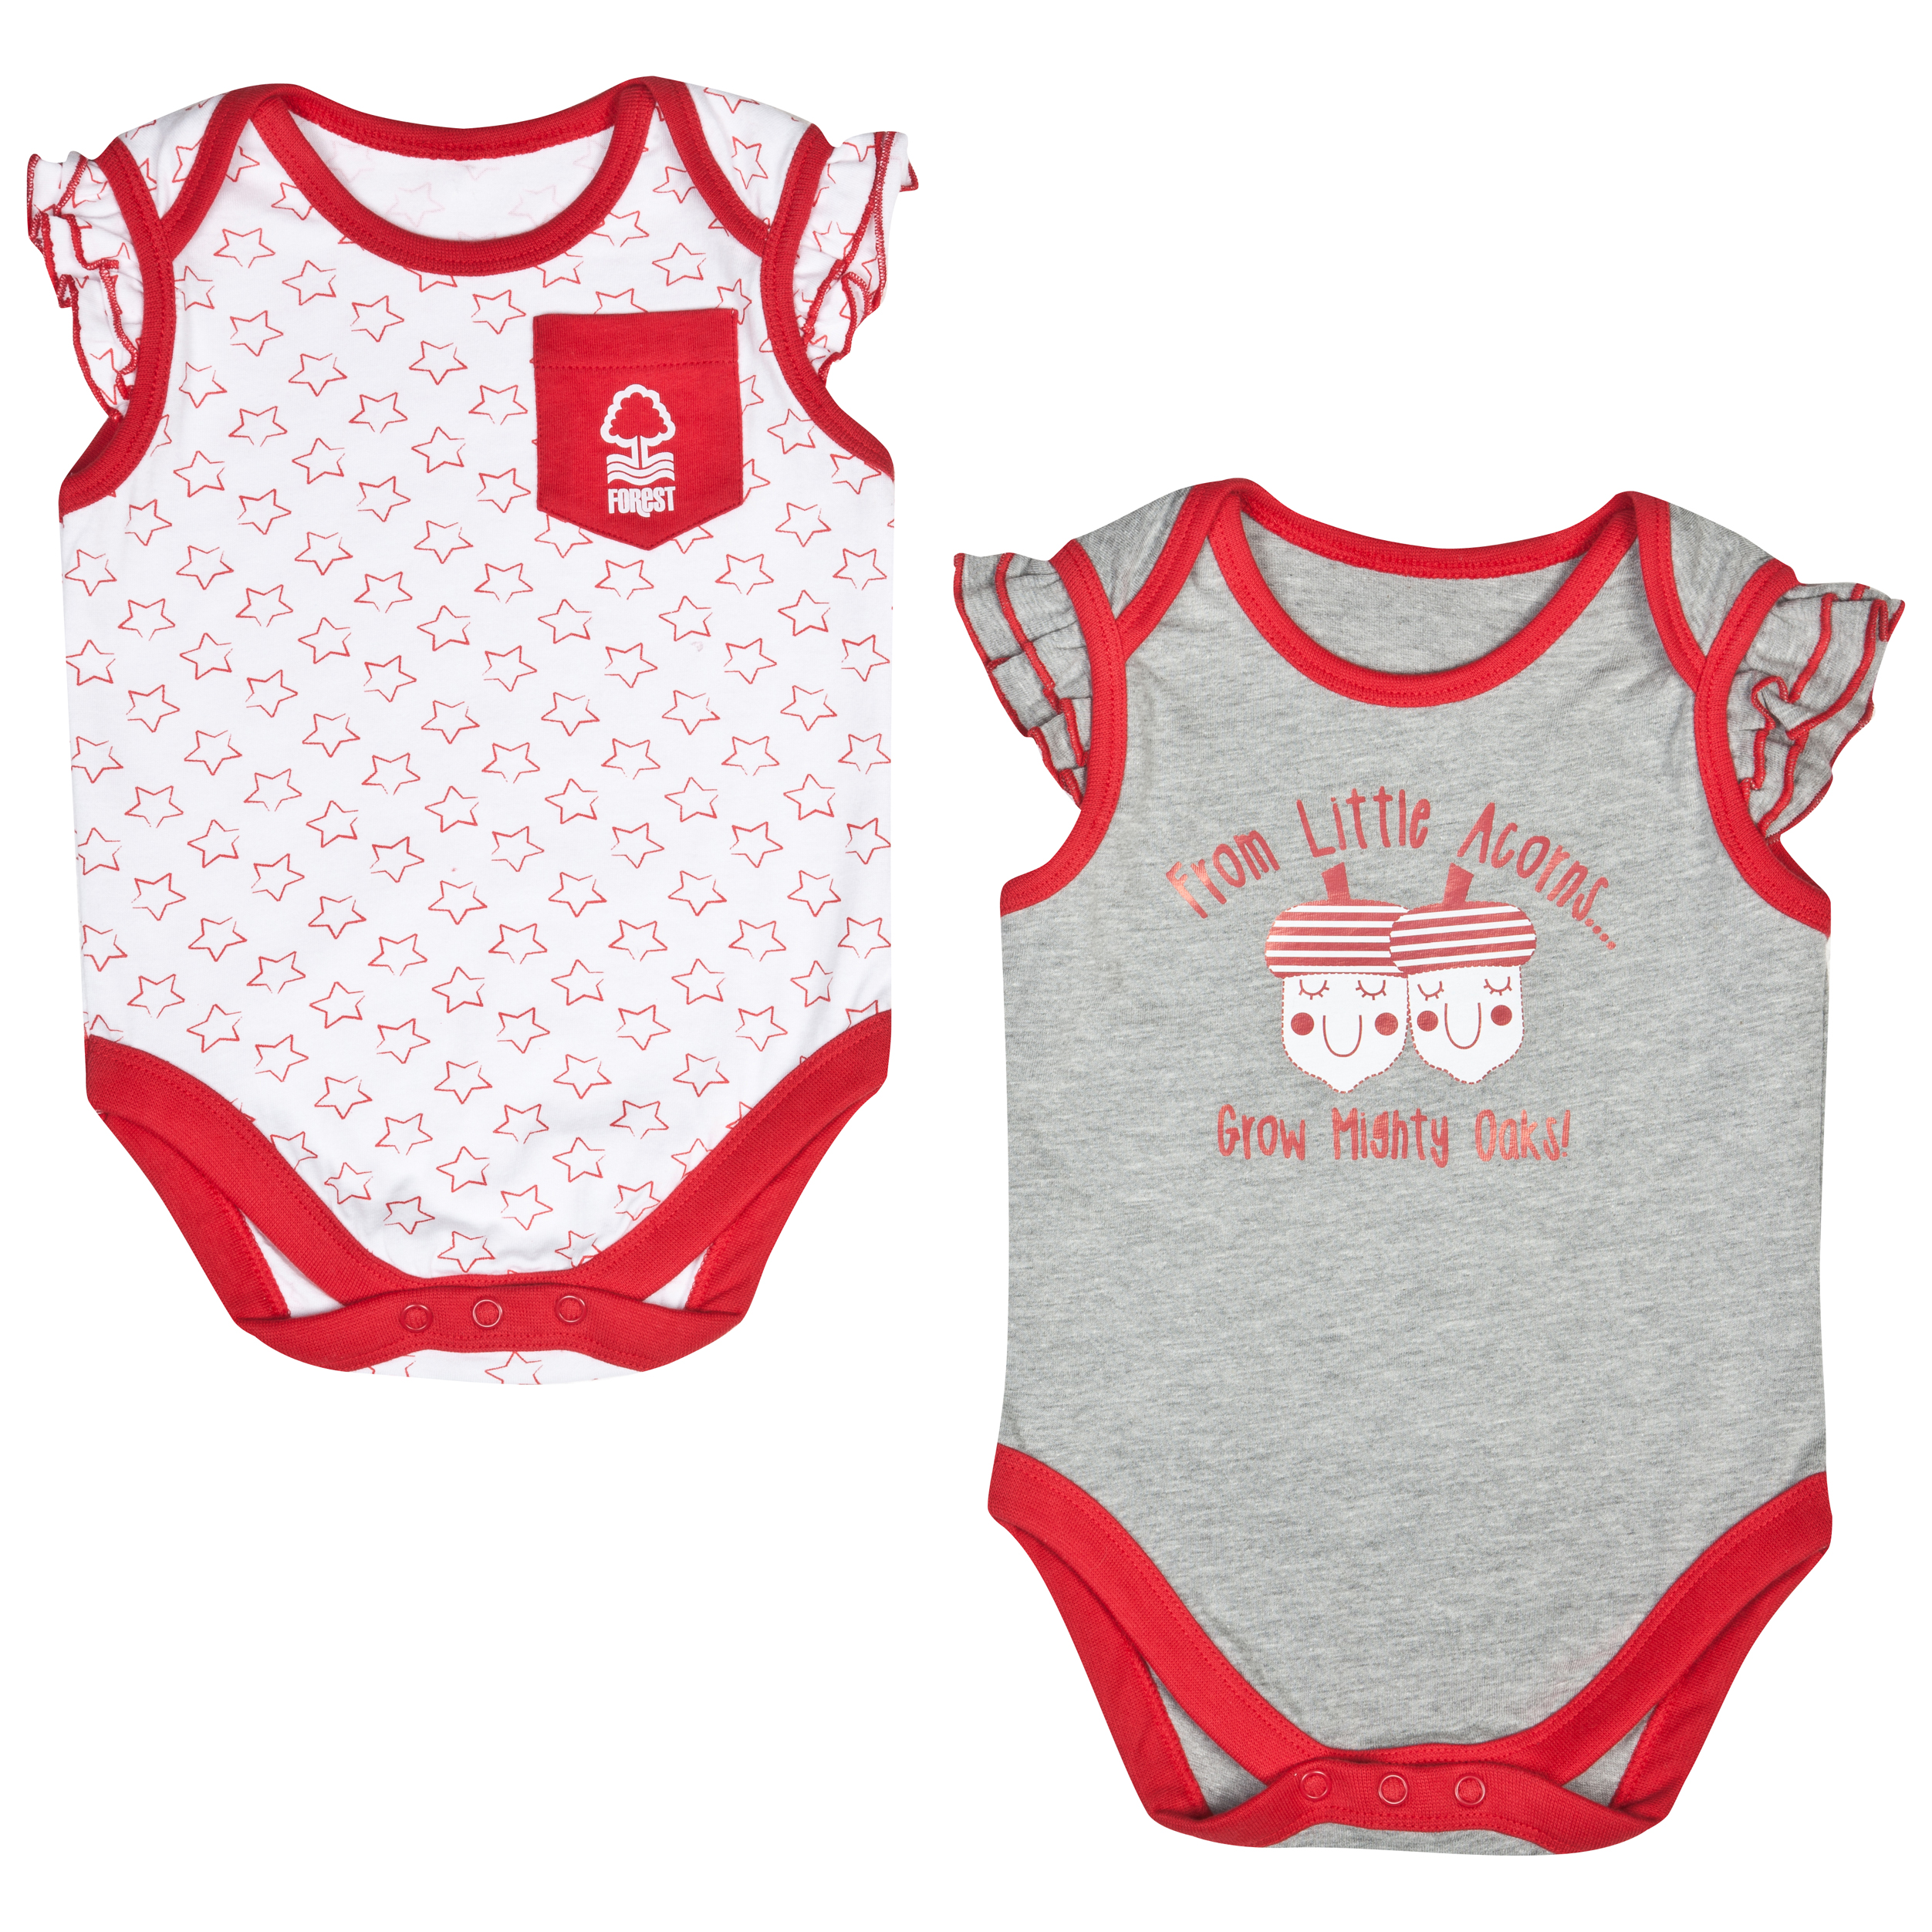 Nottingham Forest Acorns Pack of 2 Bodysuits - Red/Grey/White - Baby